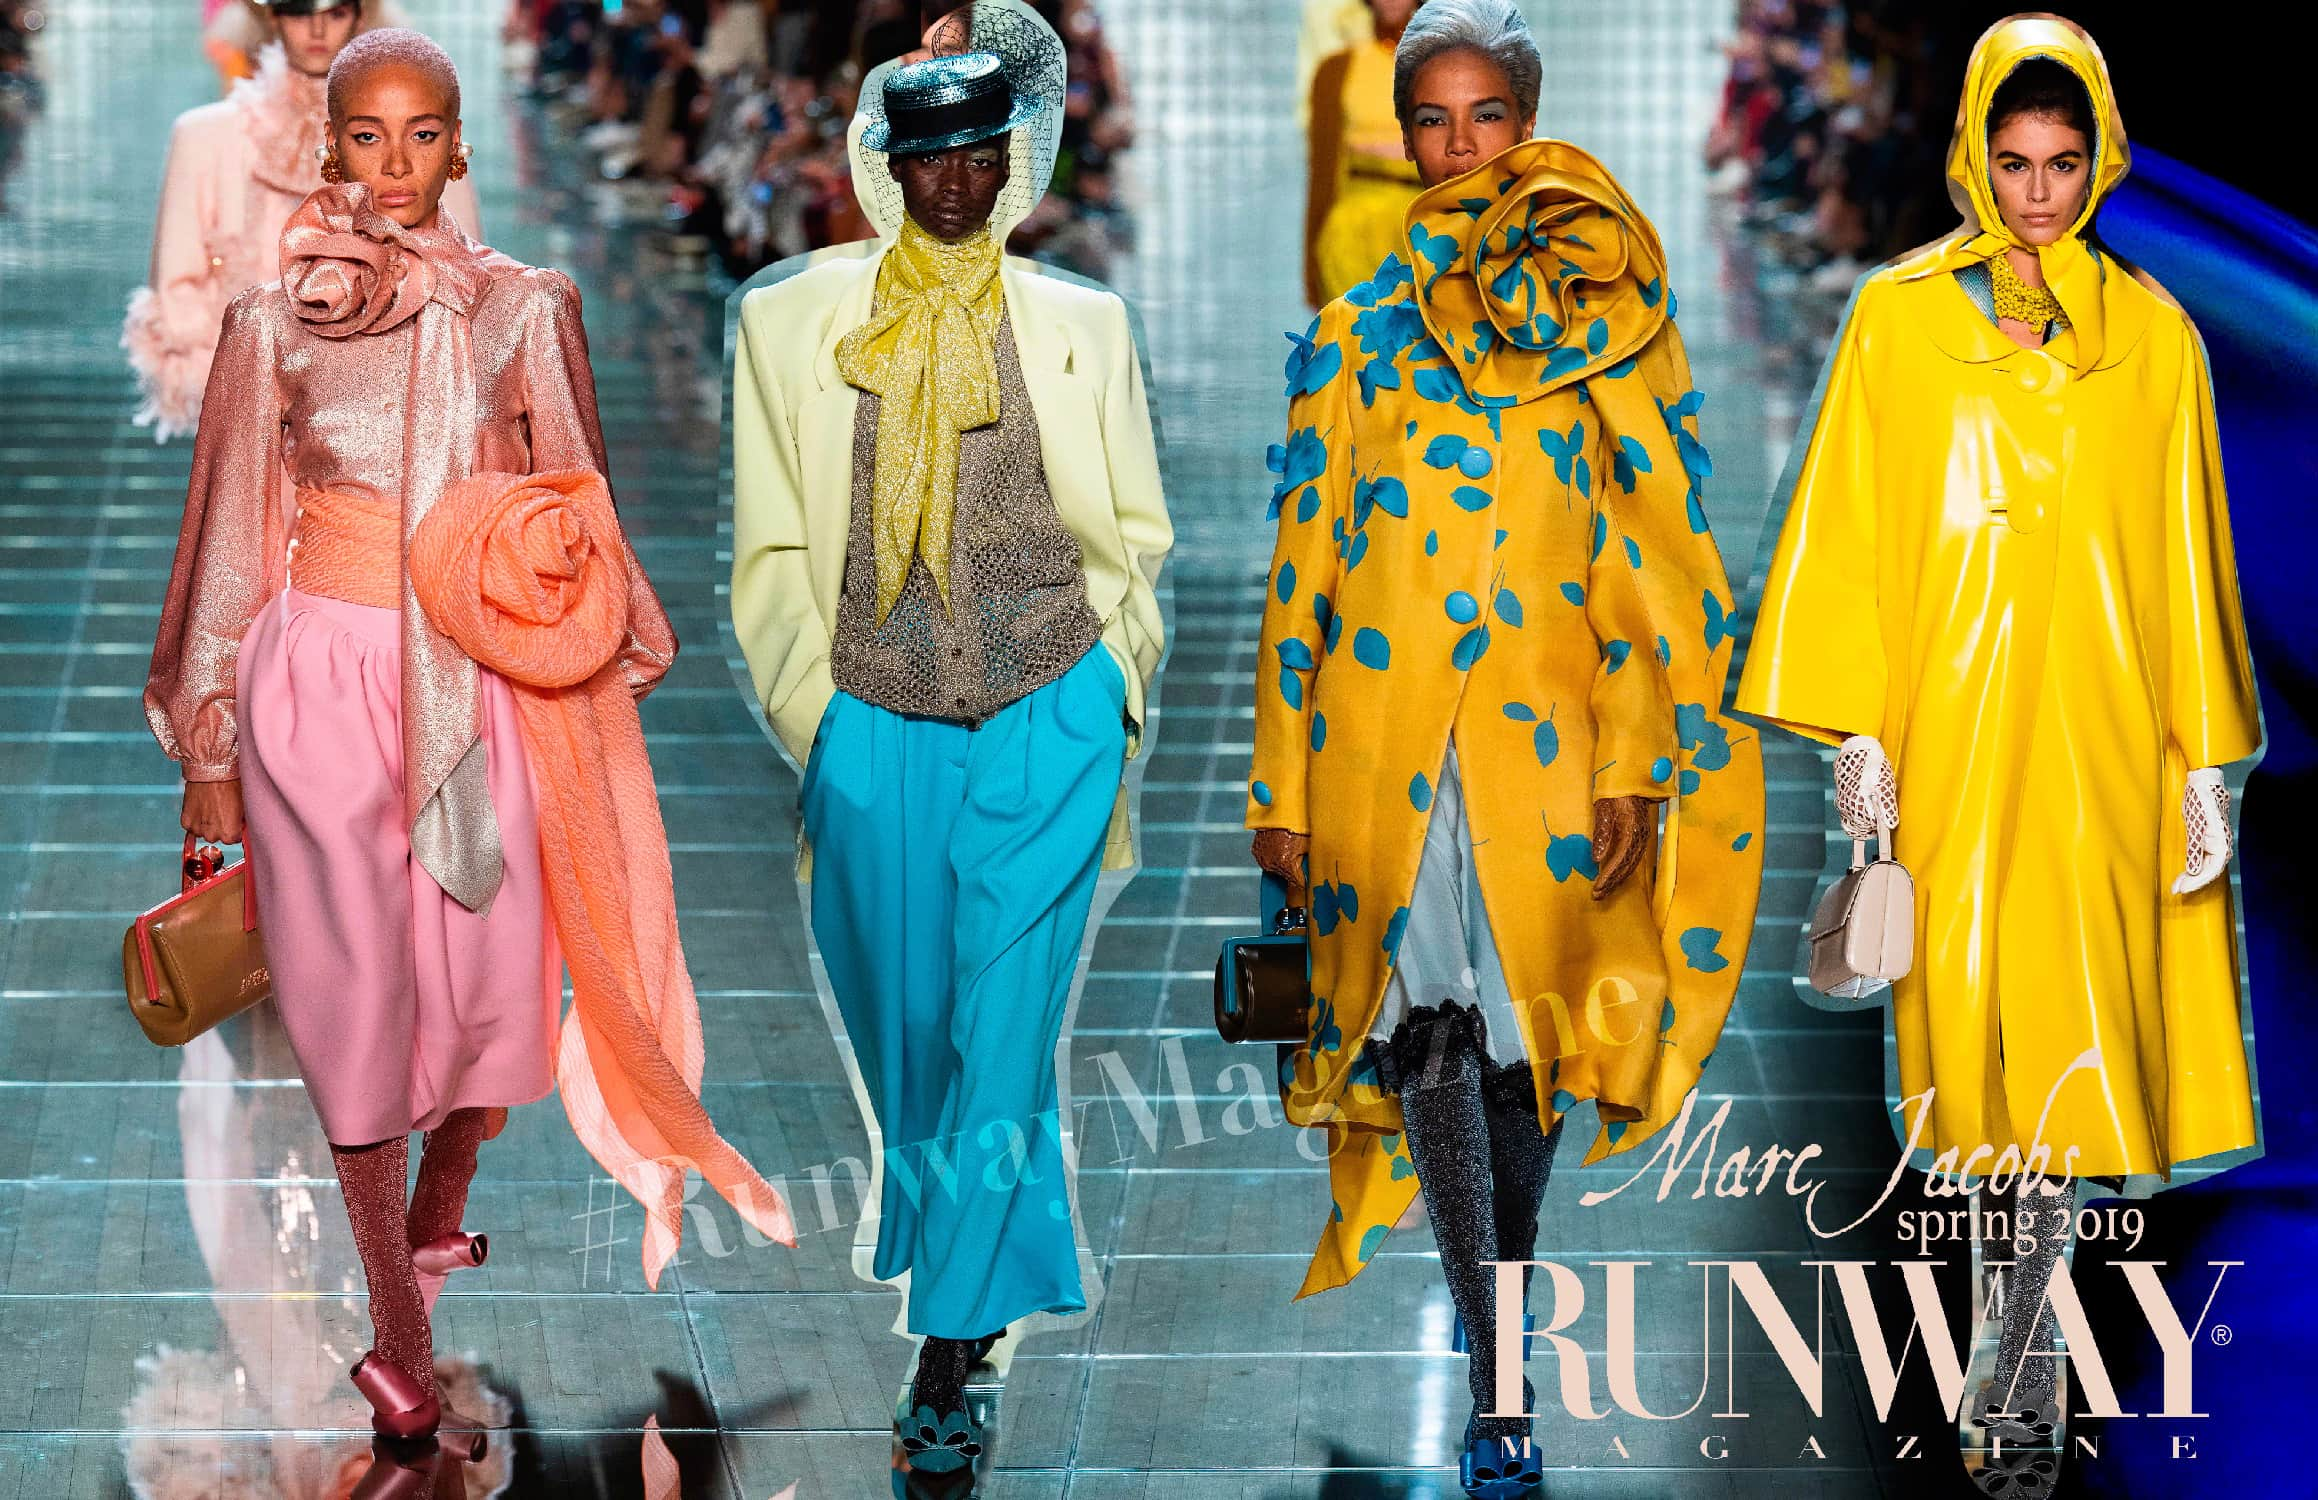 Marc Jacobs Spring Summer 2019 New York Fashion Week by RUNWAY MAGAZINE